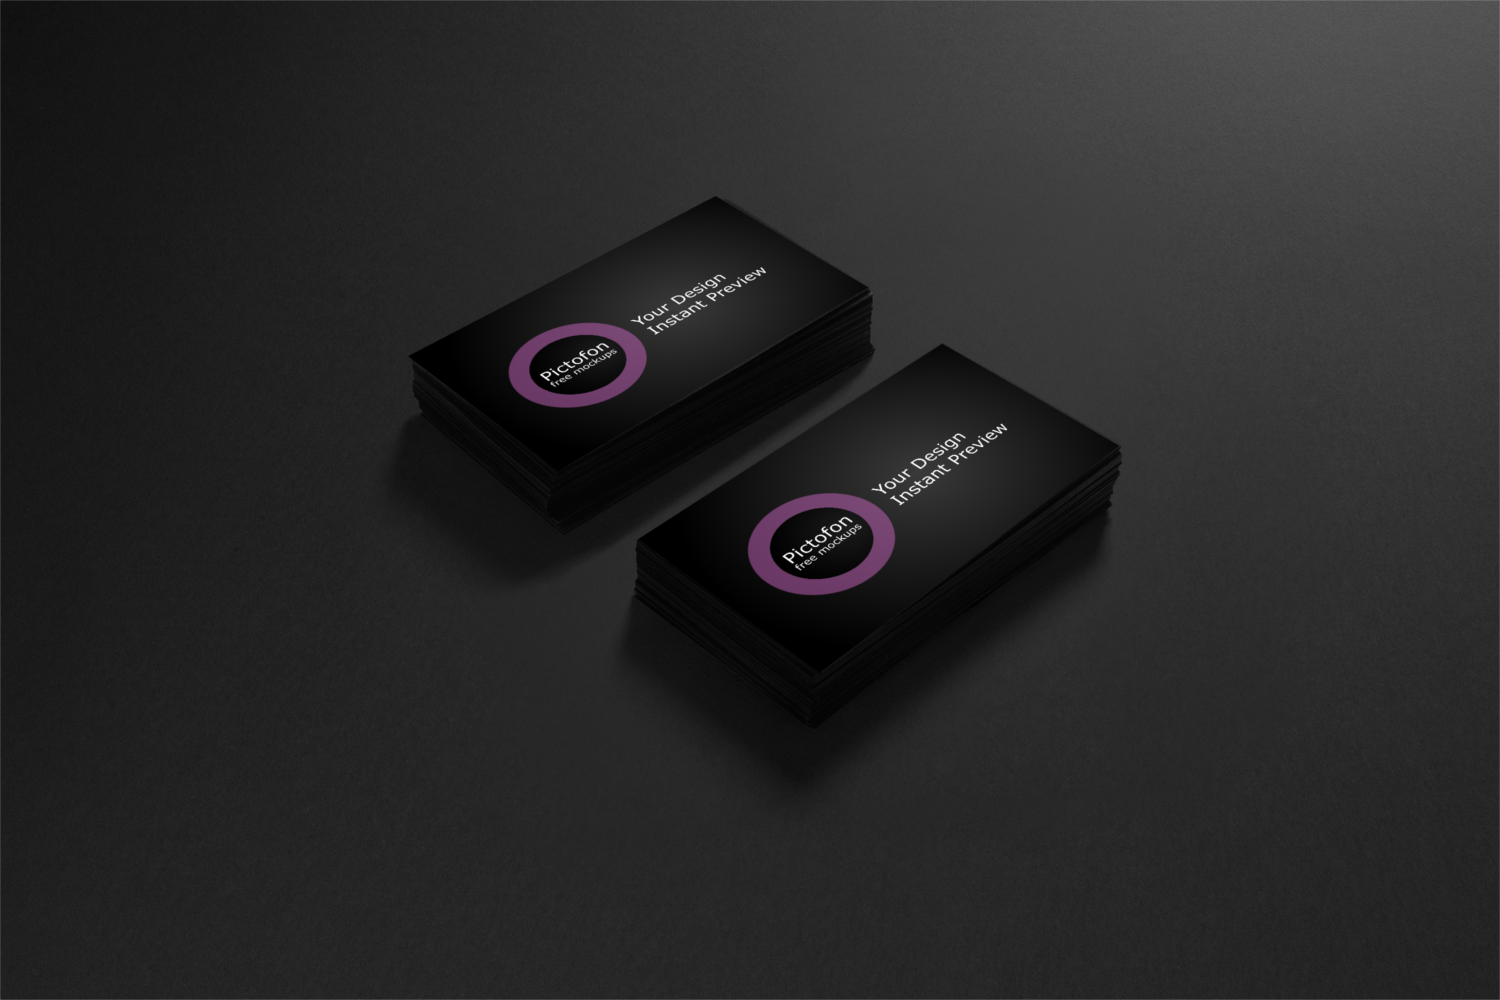 New business cards mockups have been added to Pictofon